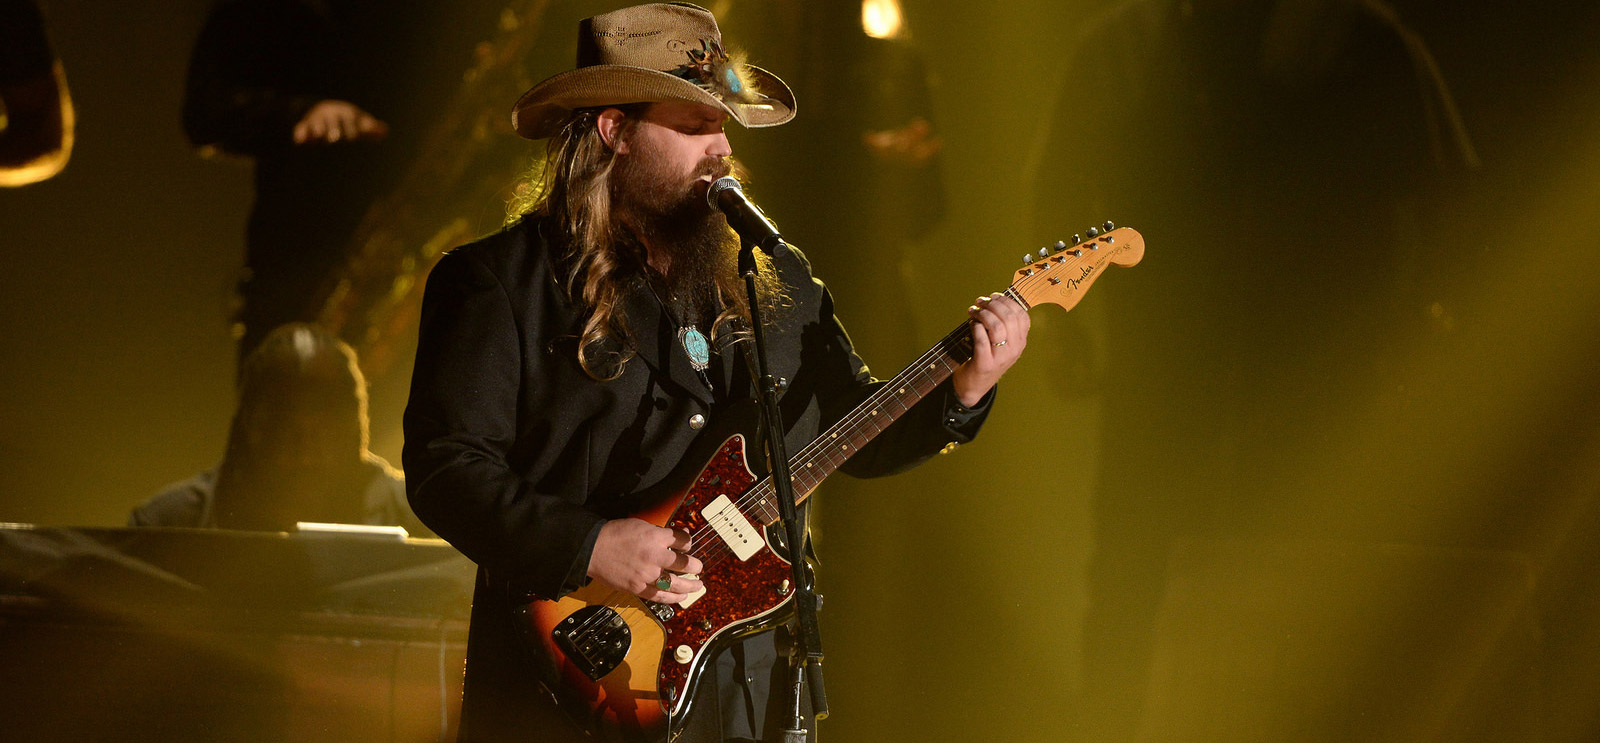 Chris Stapleton Durant OK March 15, 2019 Tickets